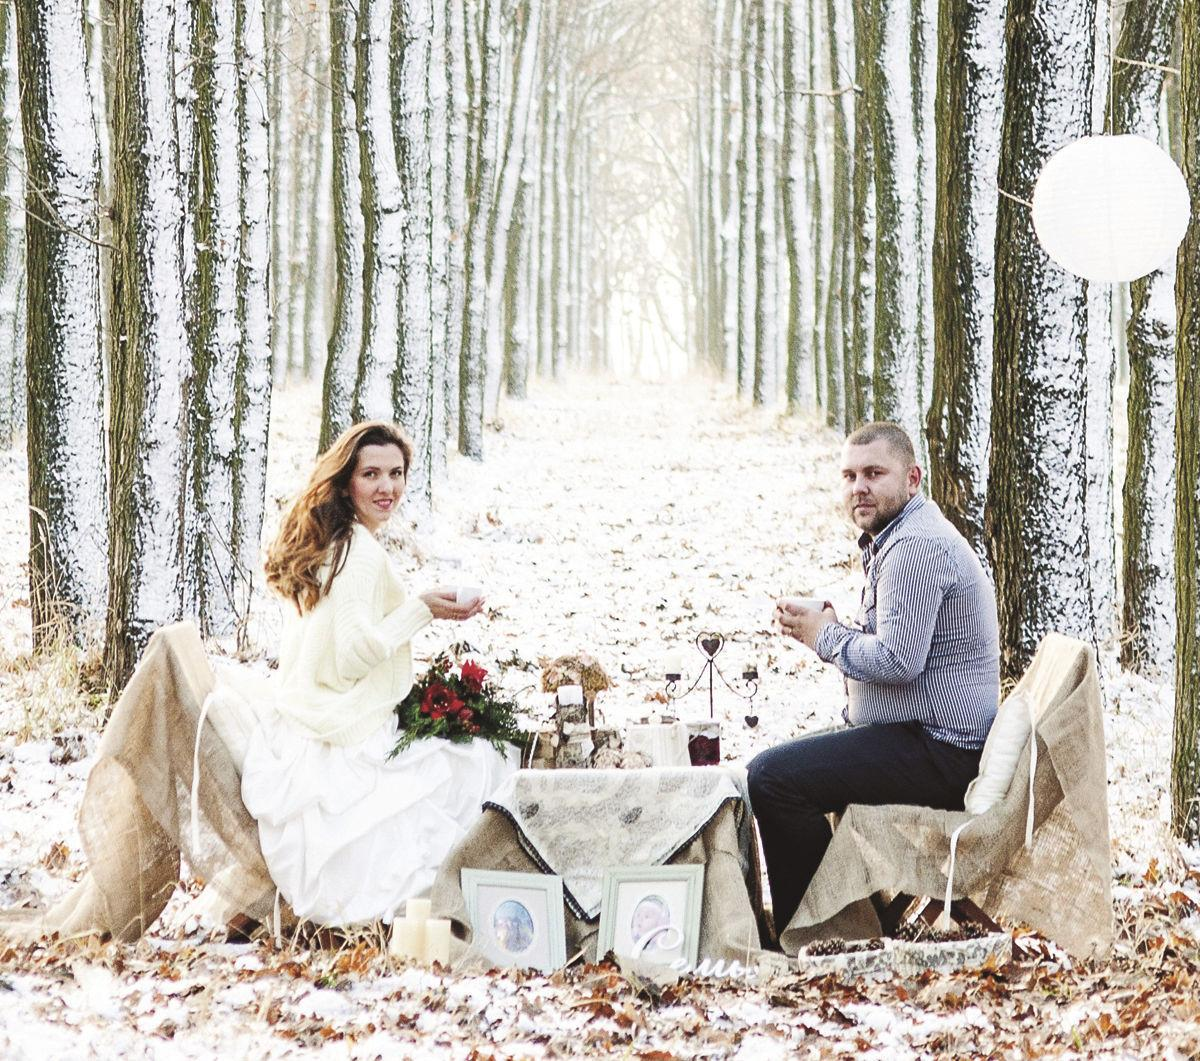 Winter wedding newlyweds sitting at a decorated table in rustic